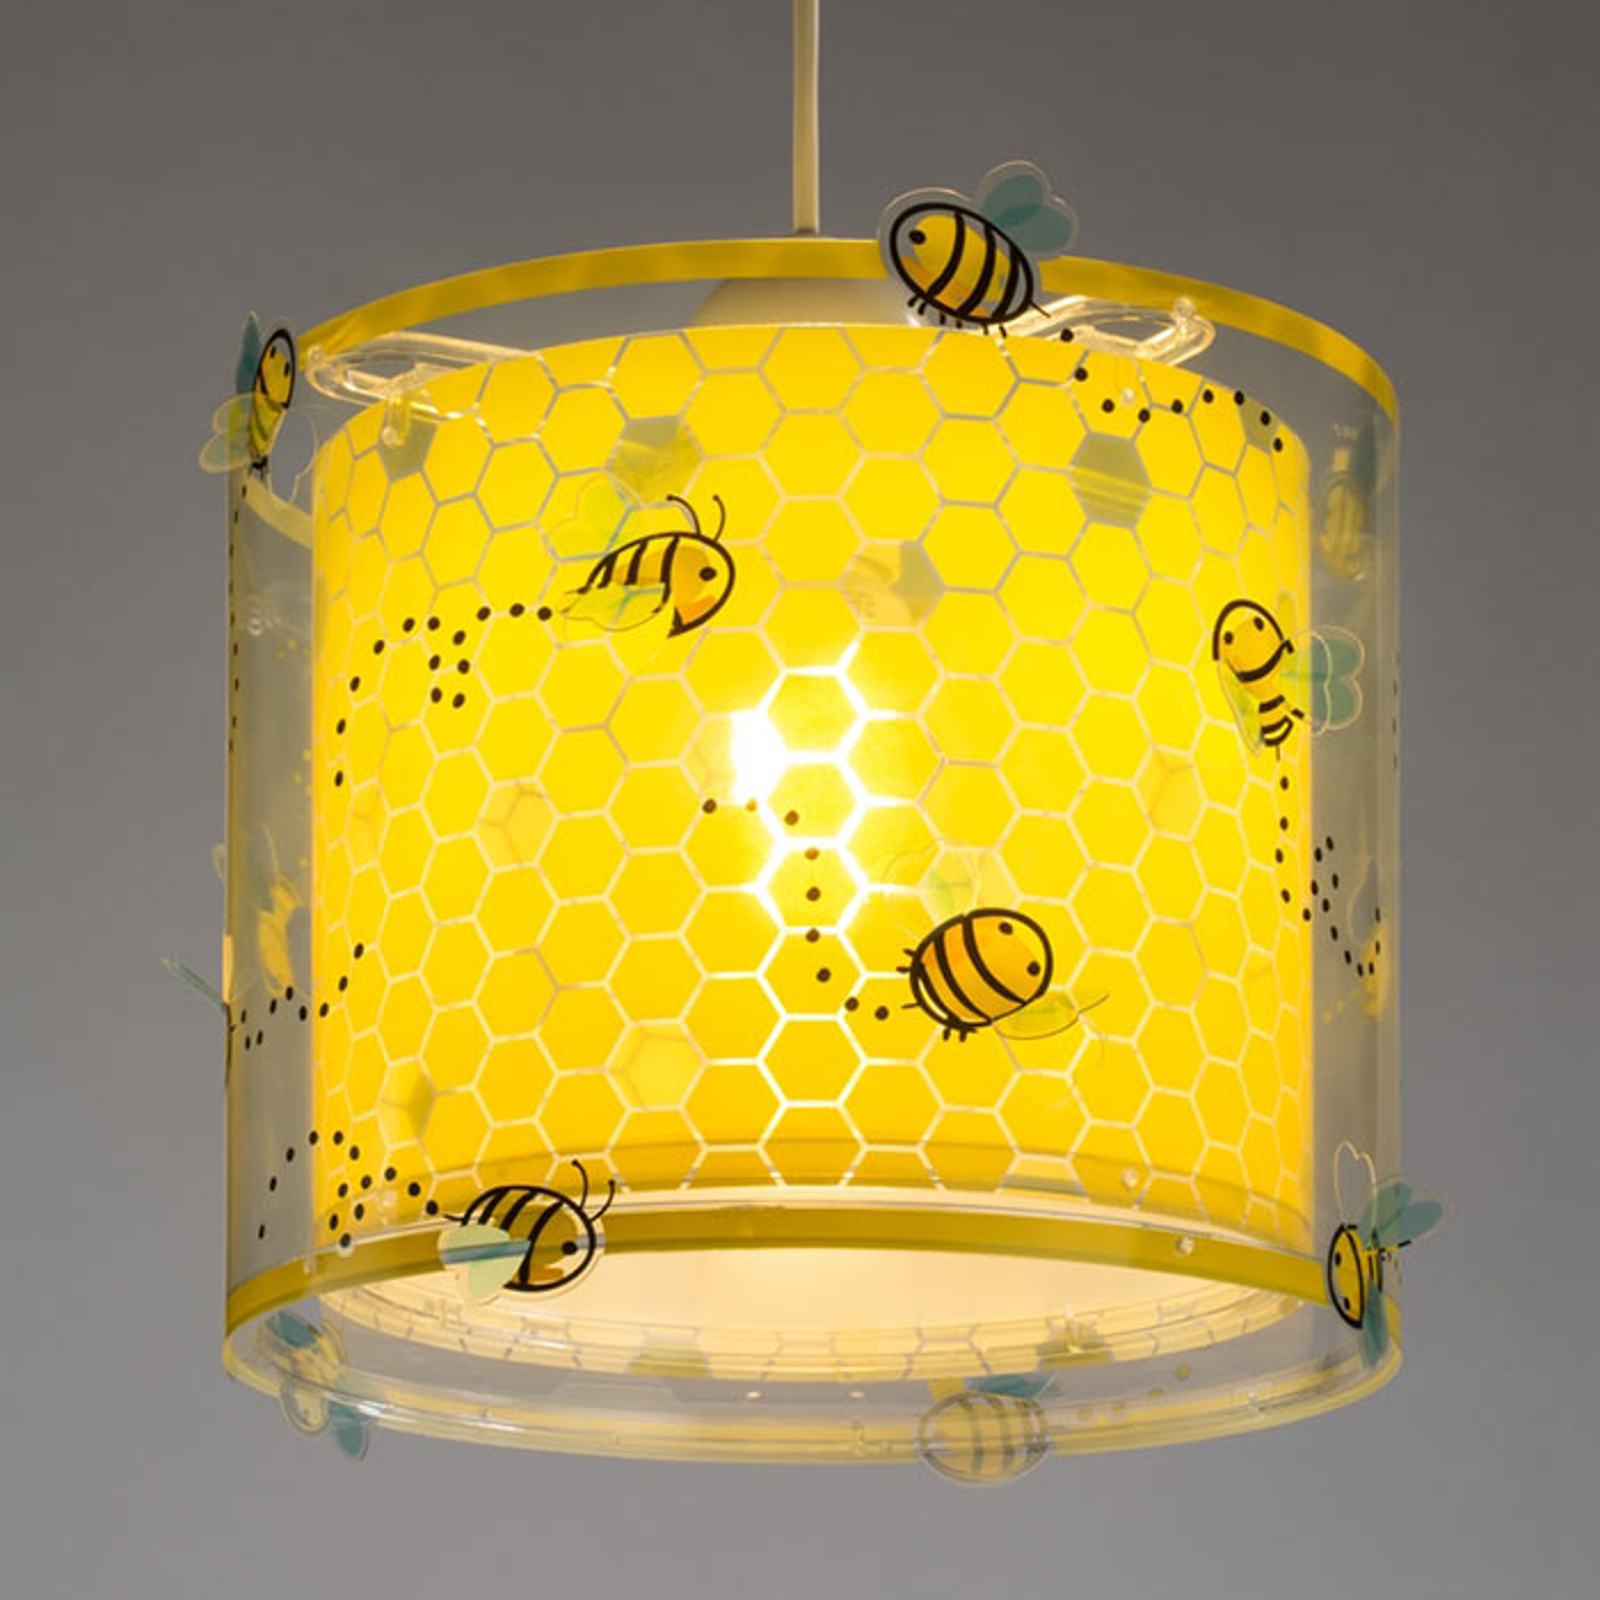 Gele kinderkamer hanglamp Bee happy